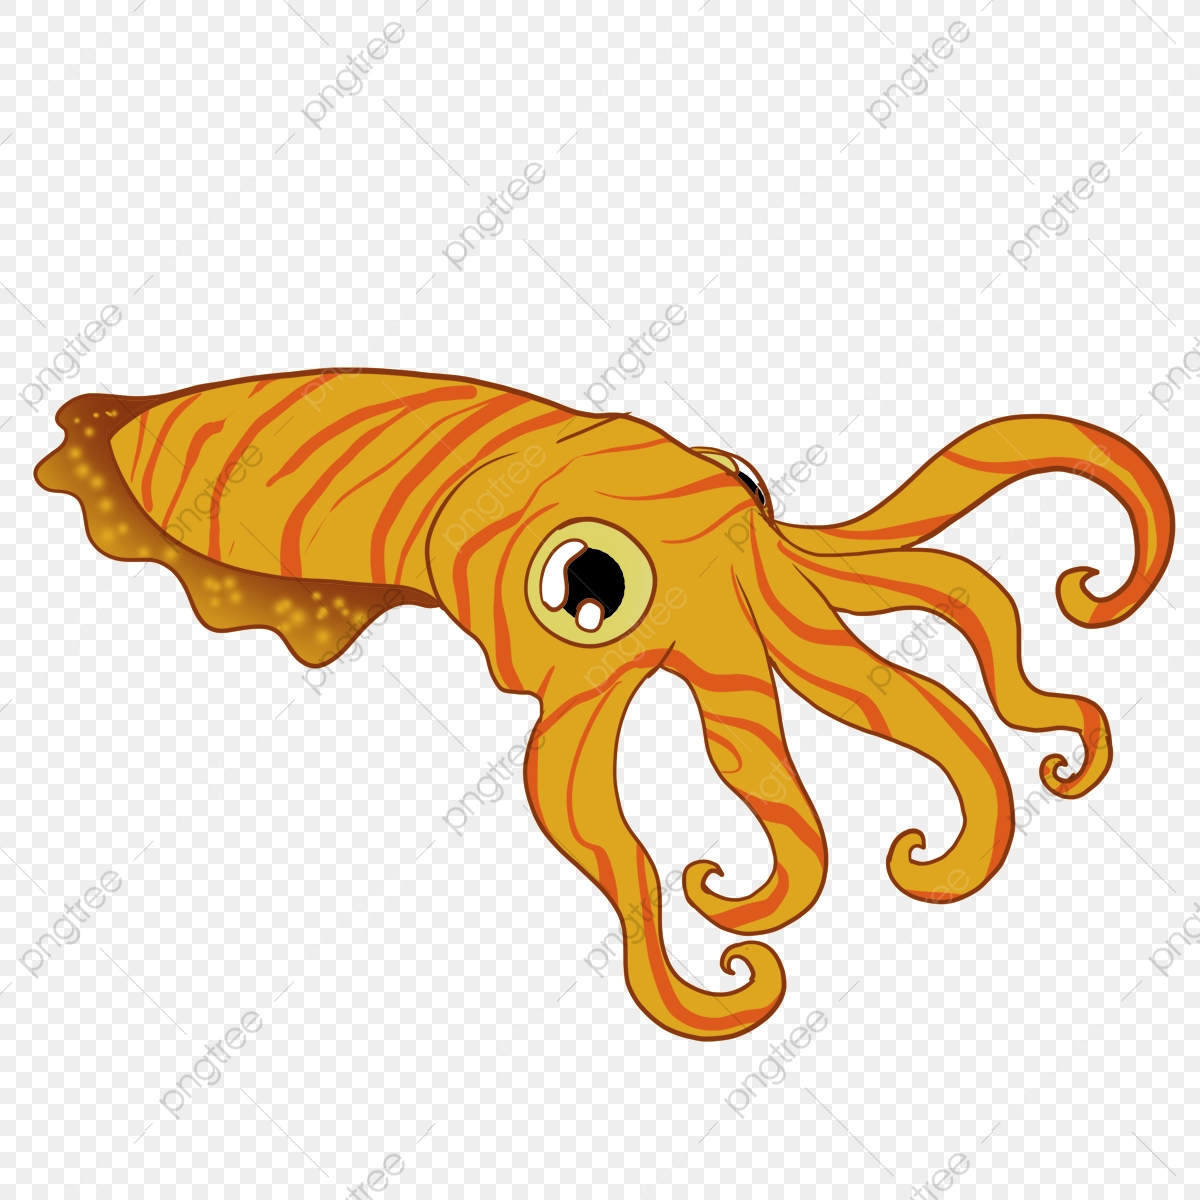 cuttlefish drawing cartoon fish squid octopus png transparent clipart image and psd file for free download https pngtree com freepng cuttlefish drawing cartoon 5313225 html